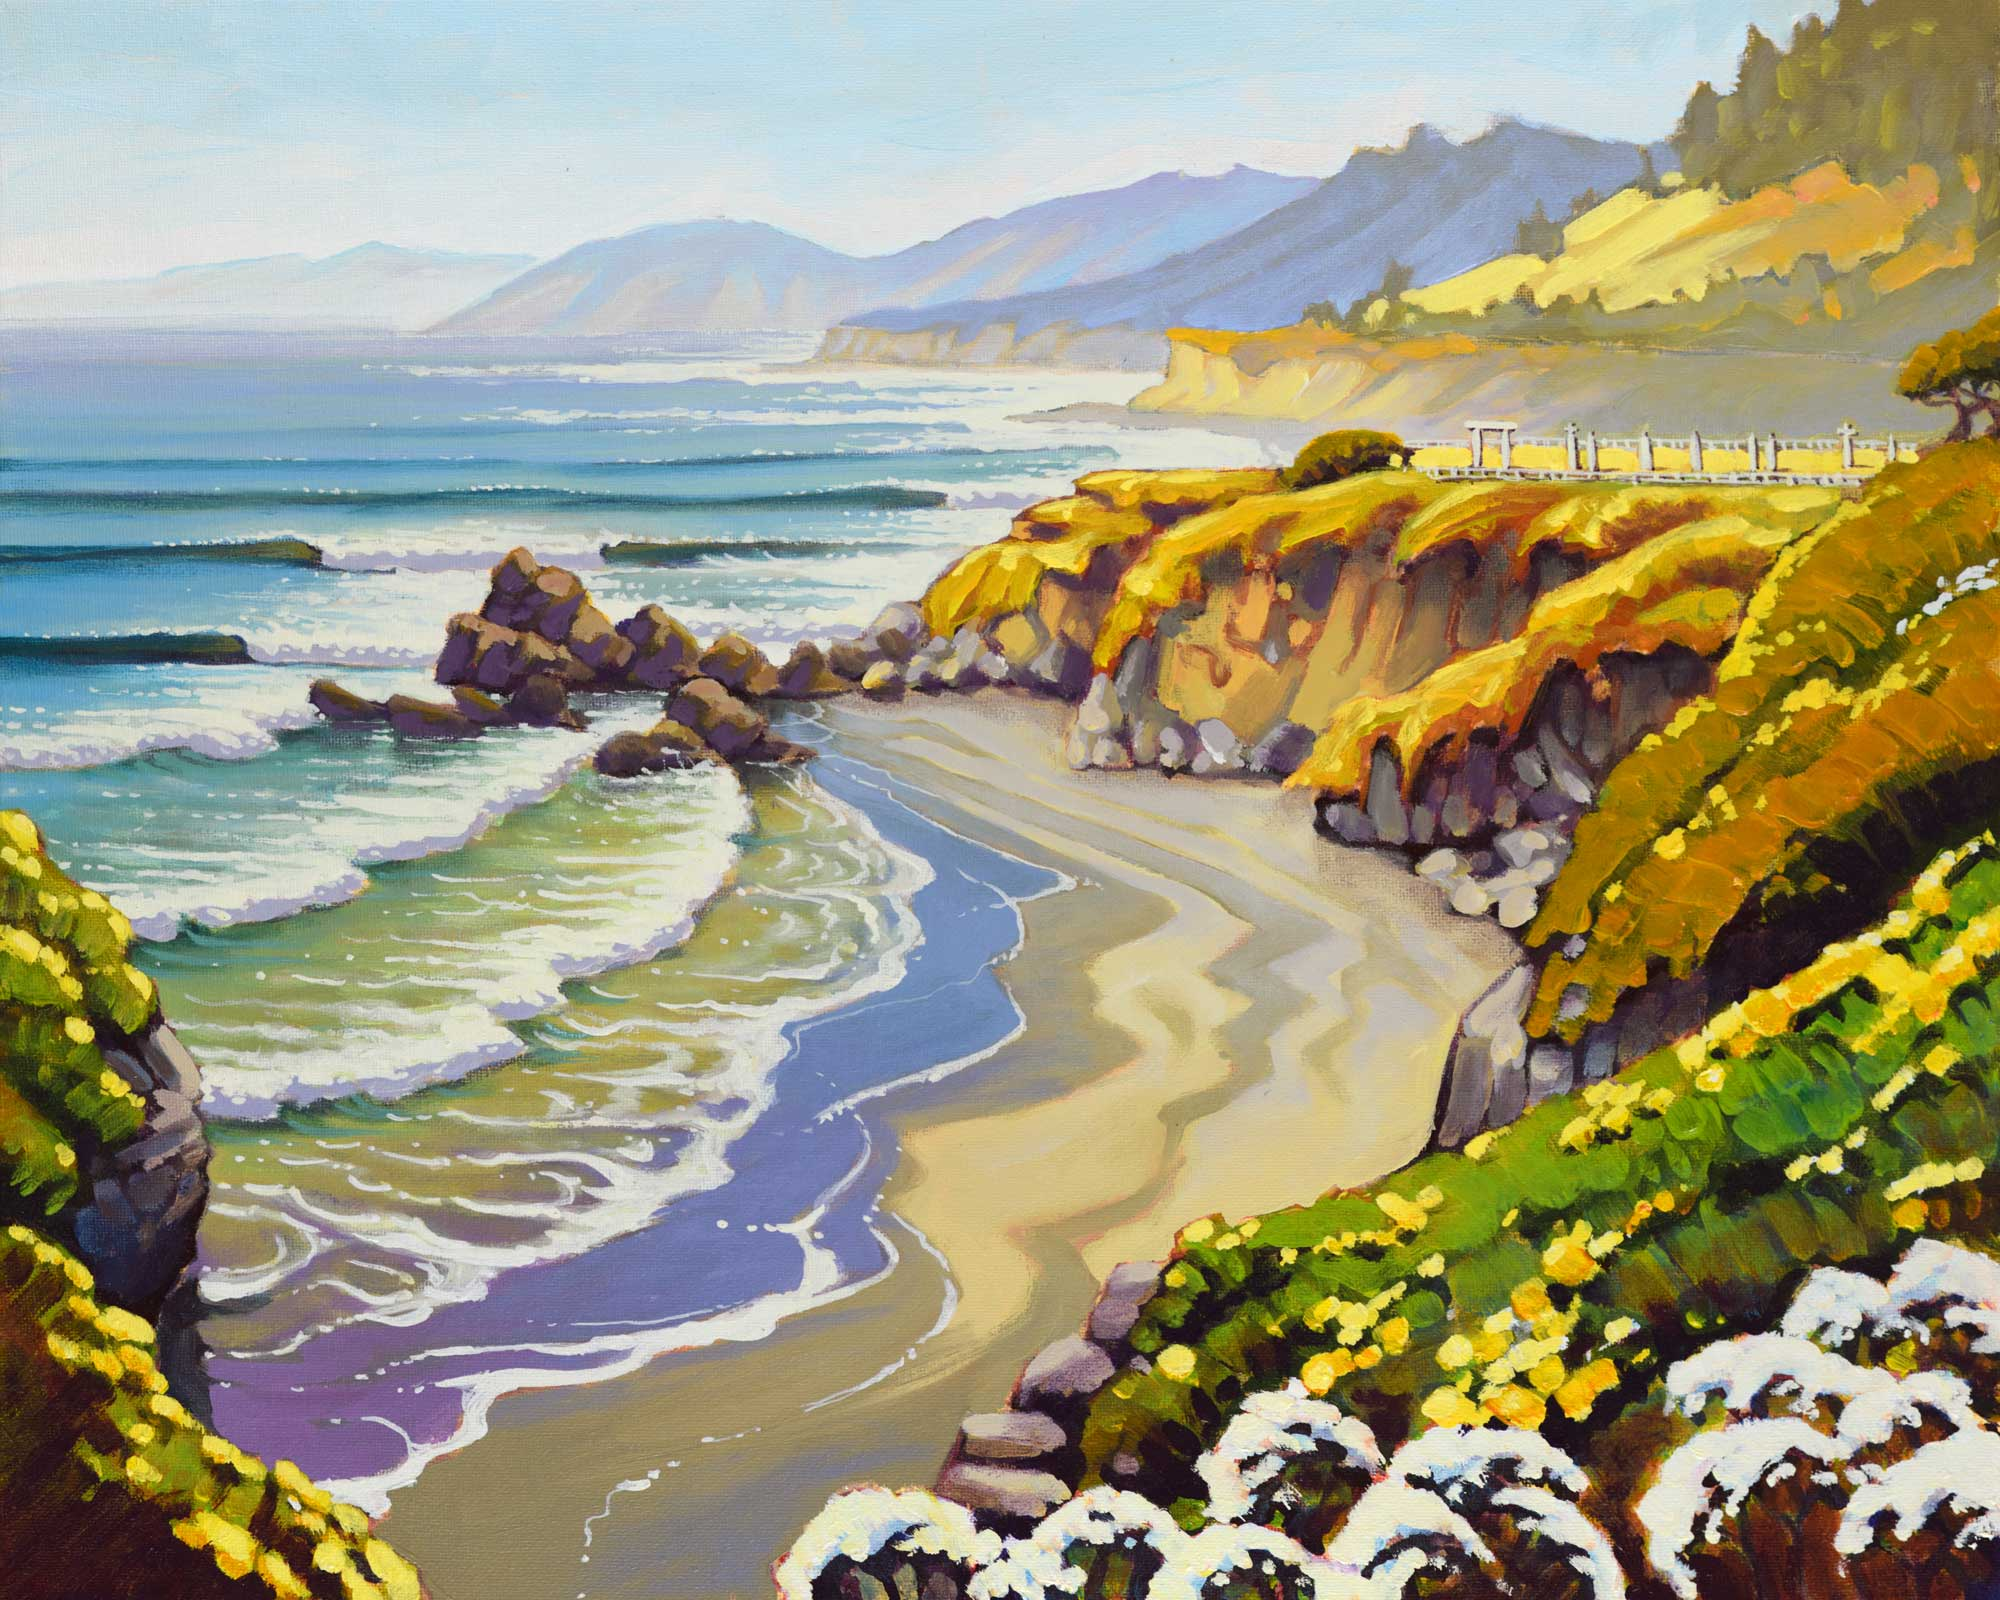 A plein air landscape painting of the beach and cemetery near Wages Creek on the Mendocino coast of California